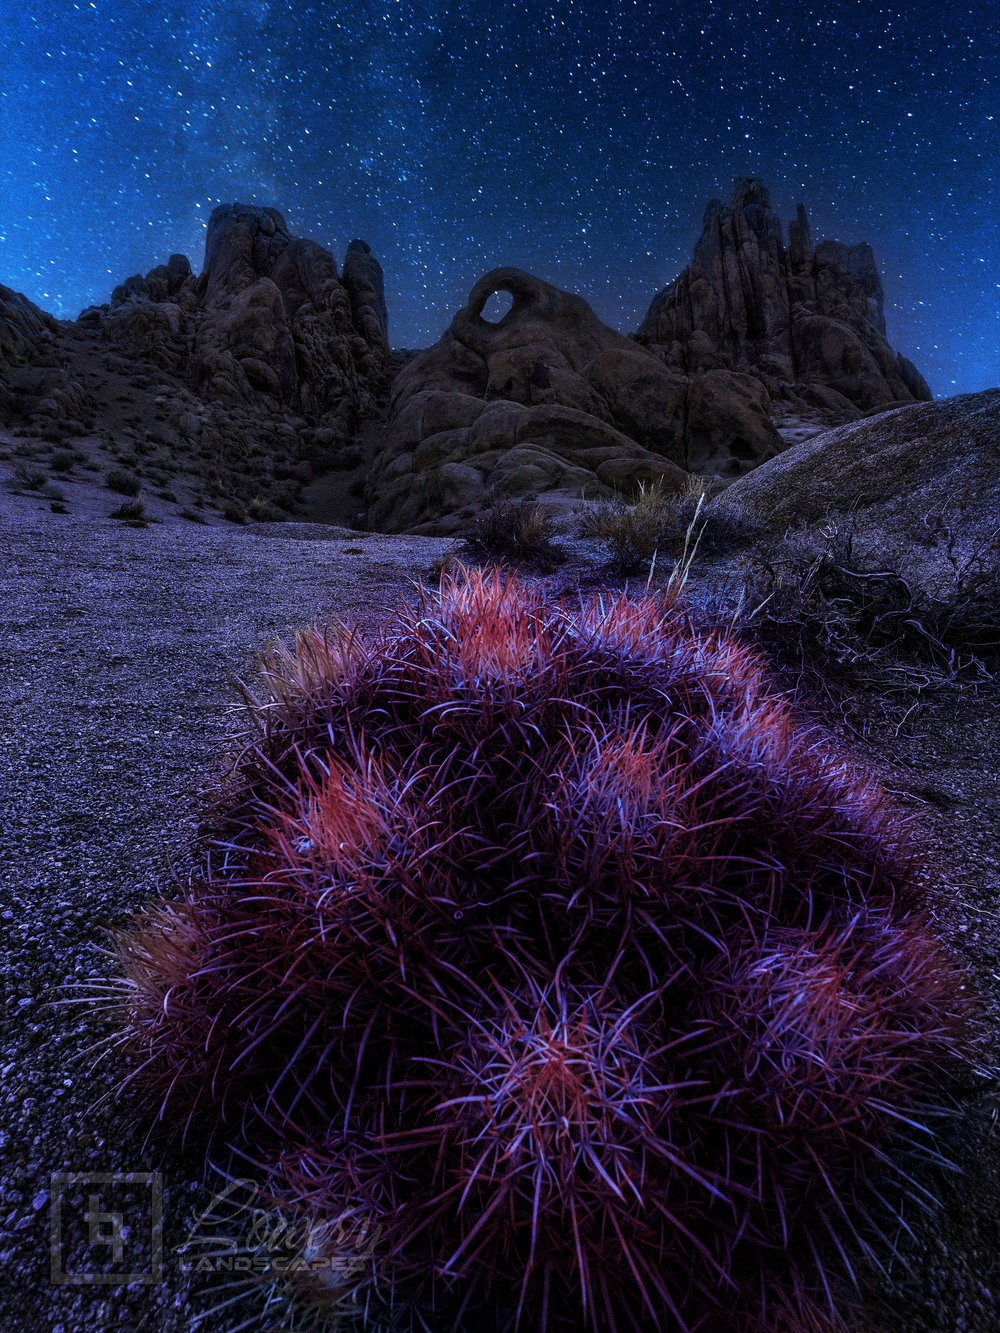 A cluster of pink Barrel Cacti rest under the first light of dawn below a desert arch under the night sky in this blend of two exposures - one at 3am and the other during blue hour - to capture the full diversity of light in the scene.